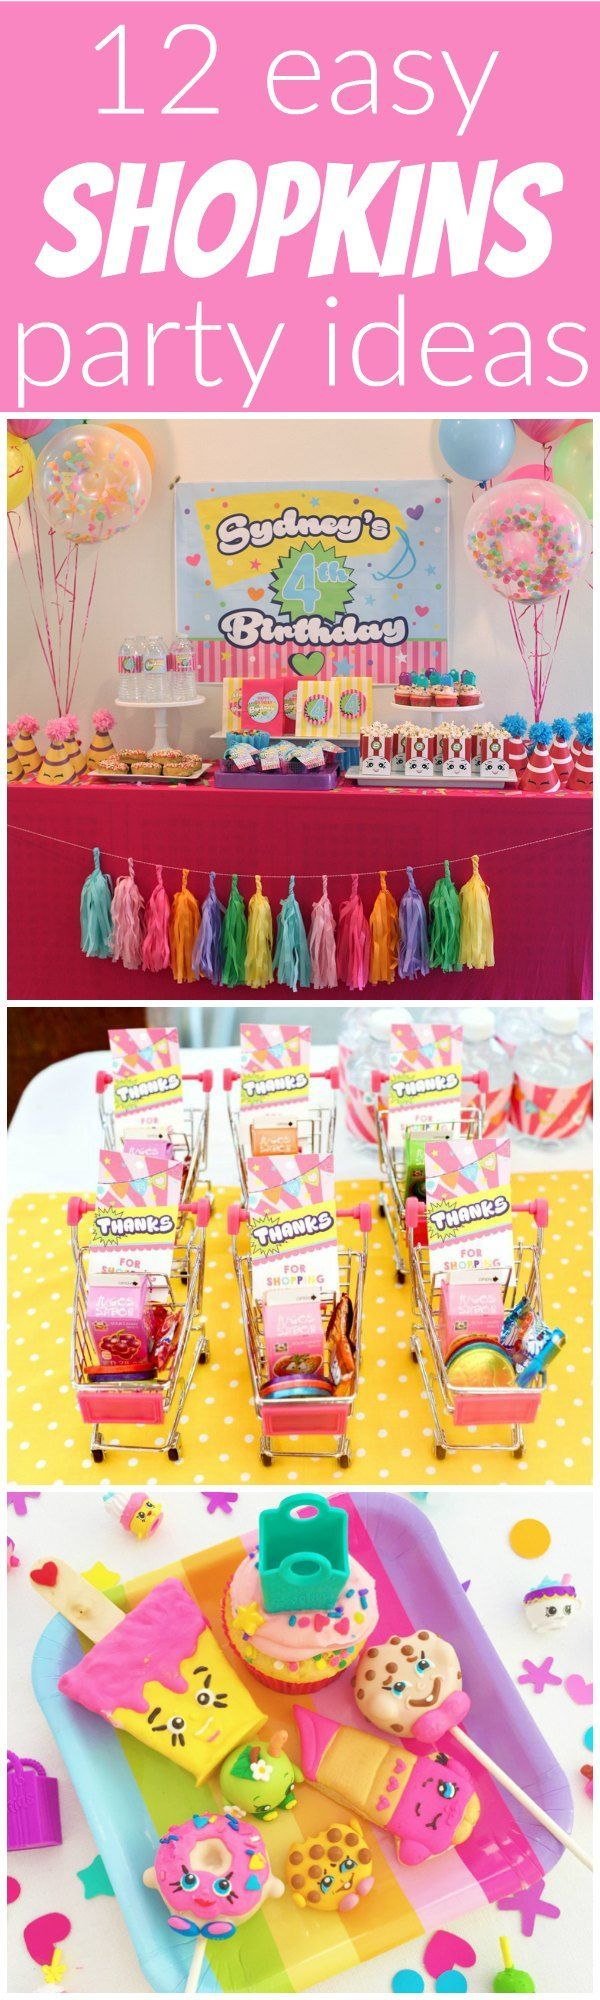 12 Easy Shopkins Party Ideas Parties Showers Pinterest